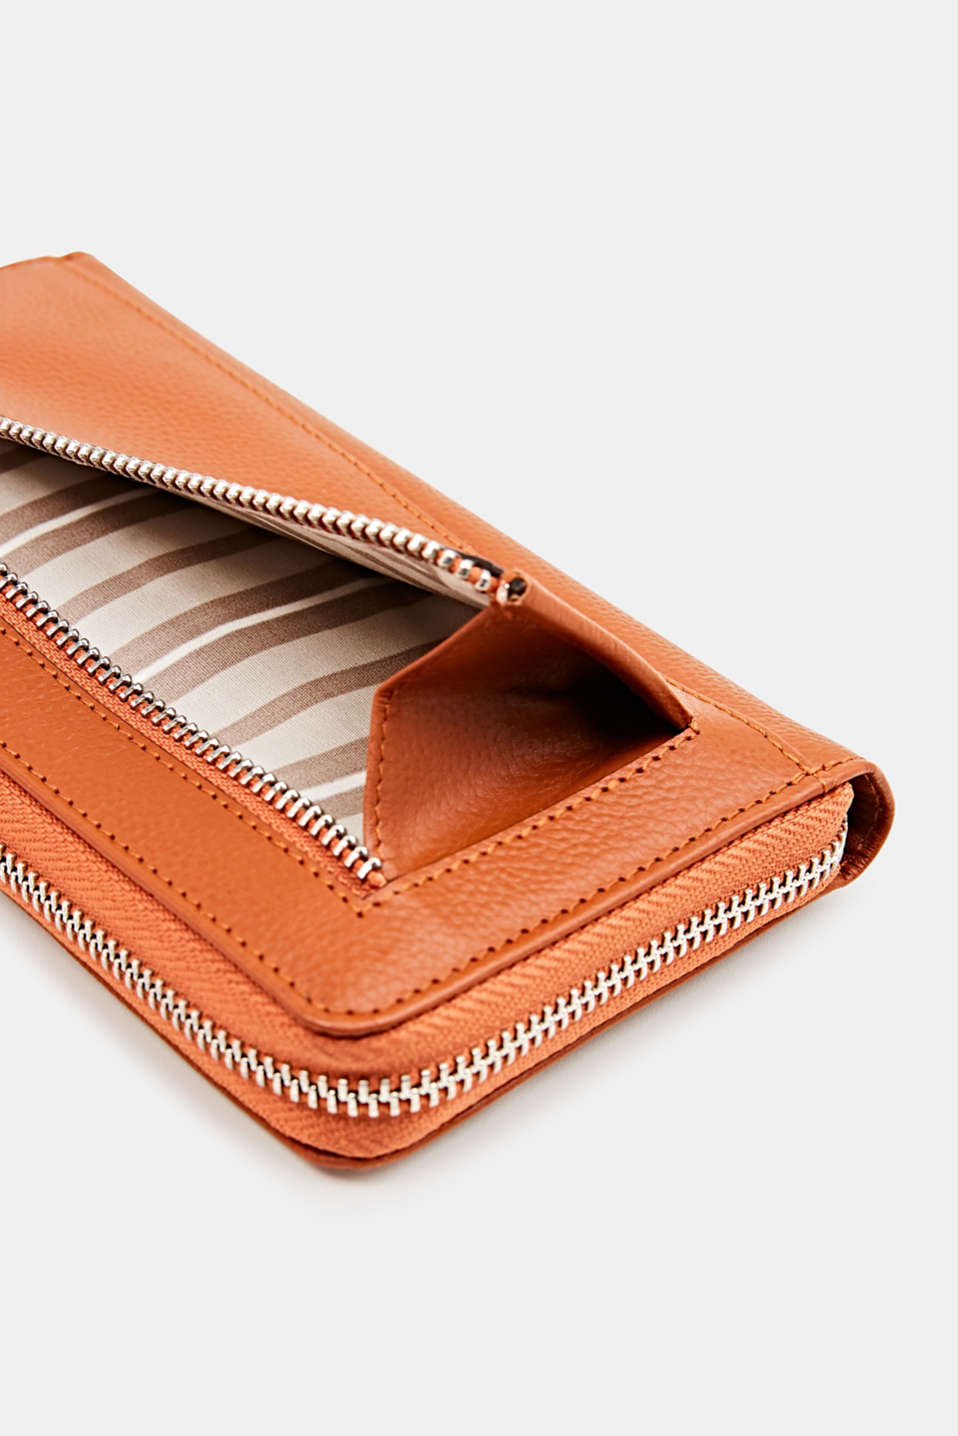 Waiter-style purse, in leather, BURNT ORANGE, detail image number 3